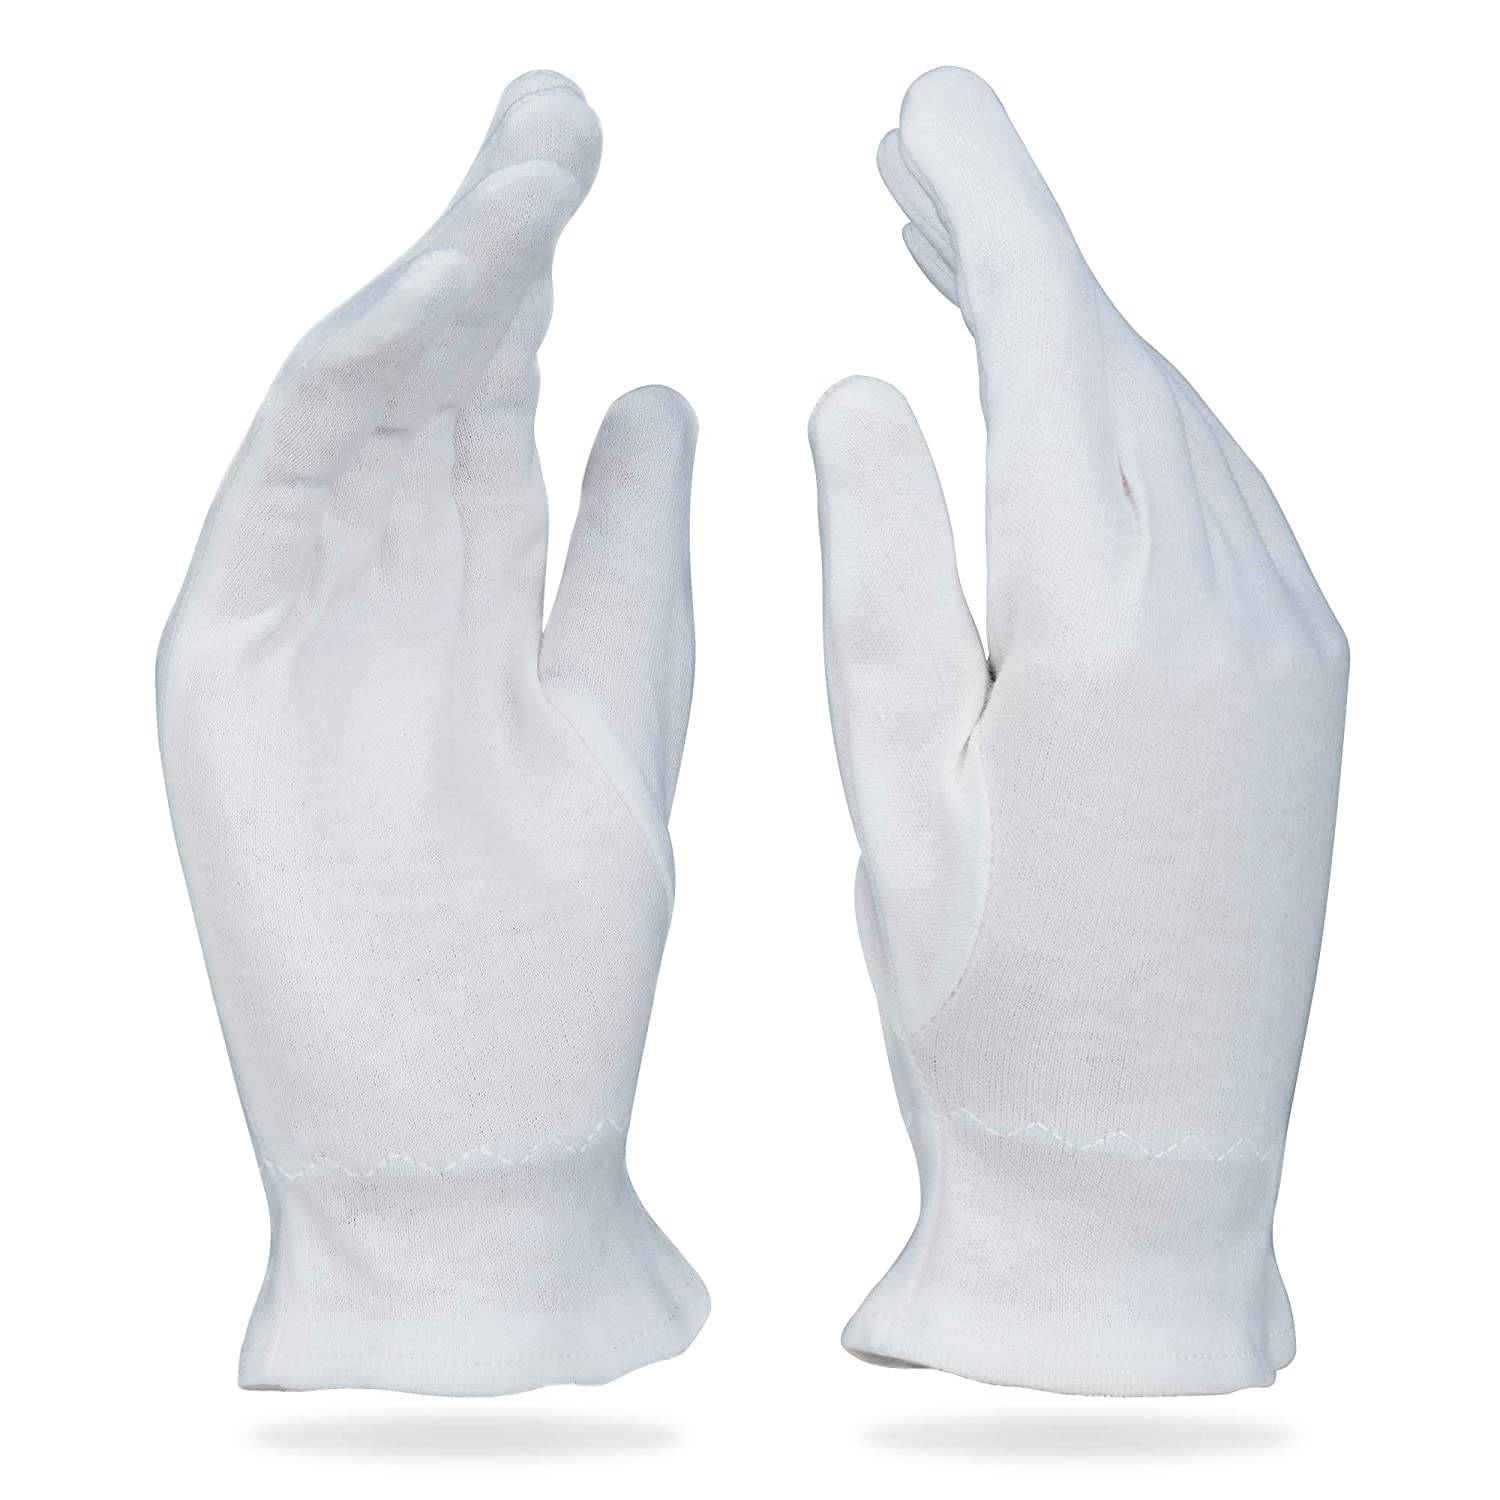 OVERNIGHT BEDTIME COTTON MOISTURIZING HAND COTTON GLOVES